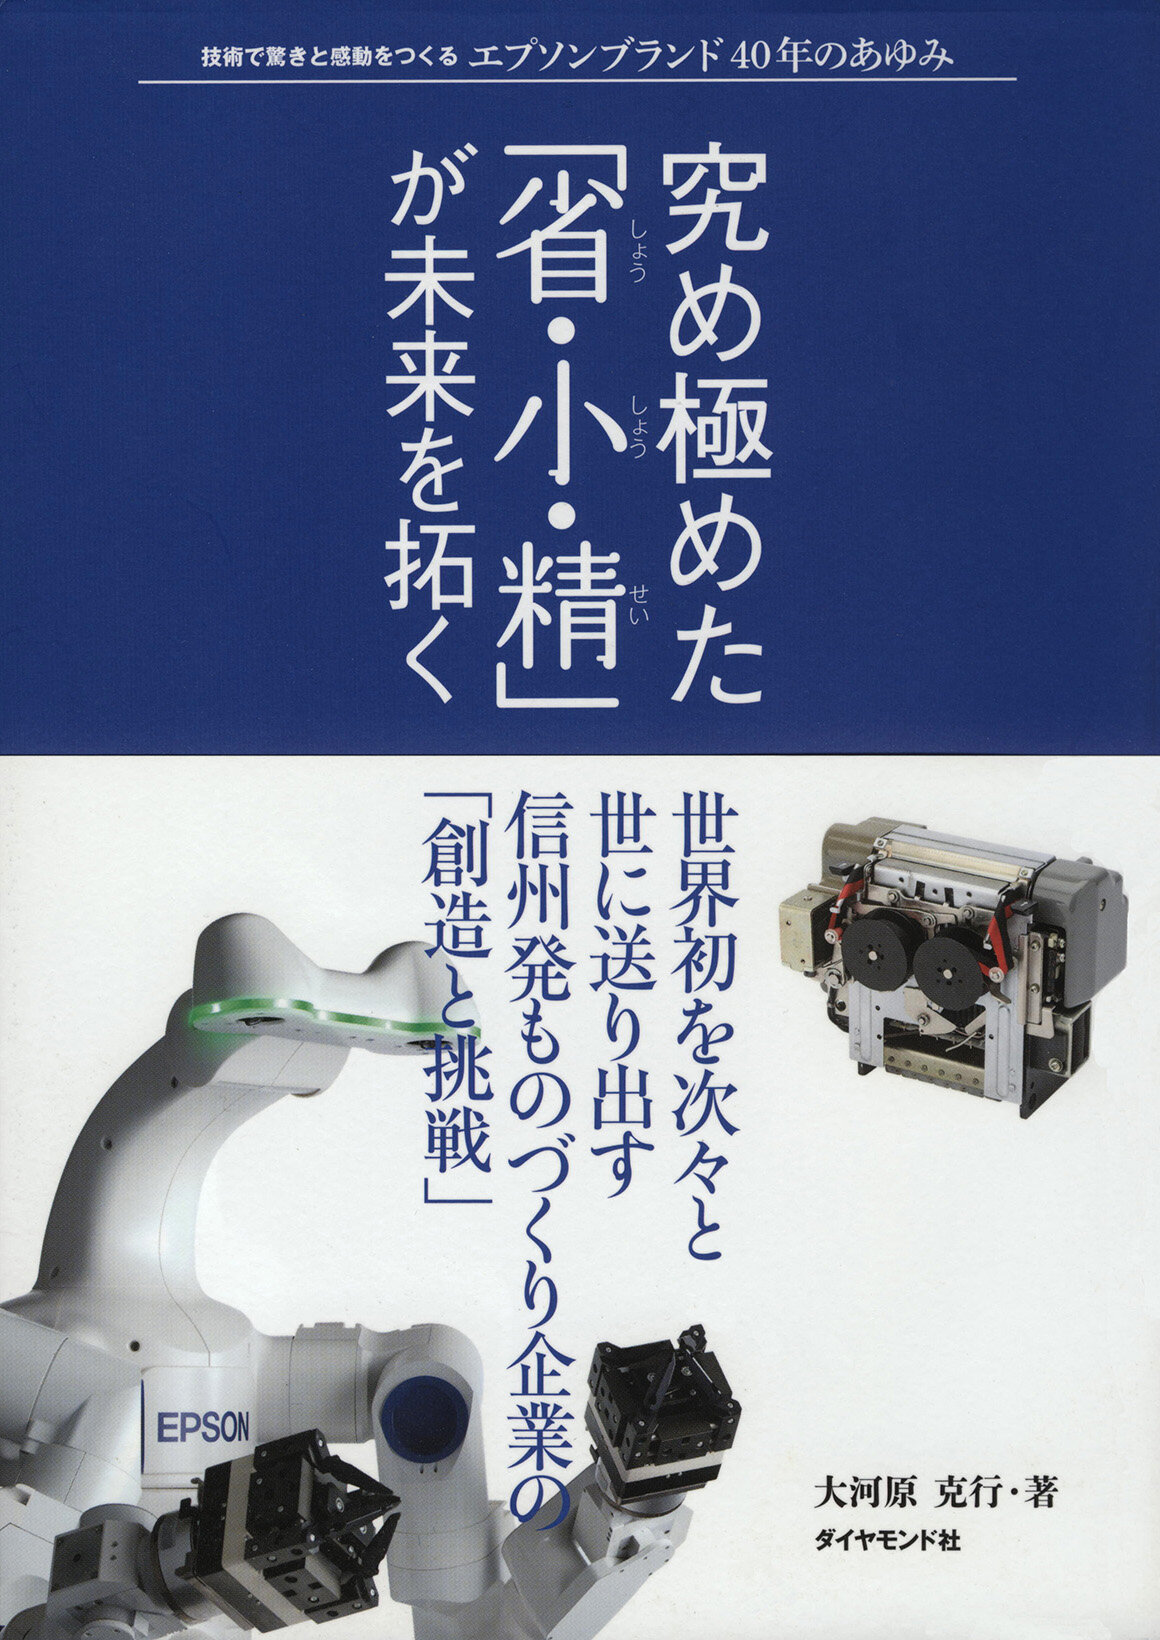 Cover - The 40 years of Epson brand